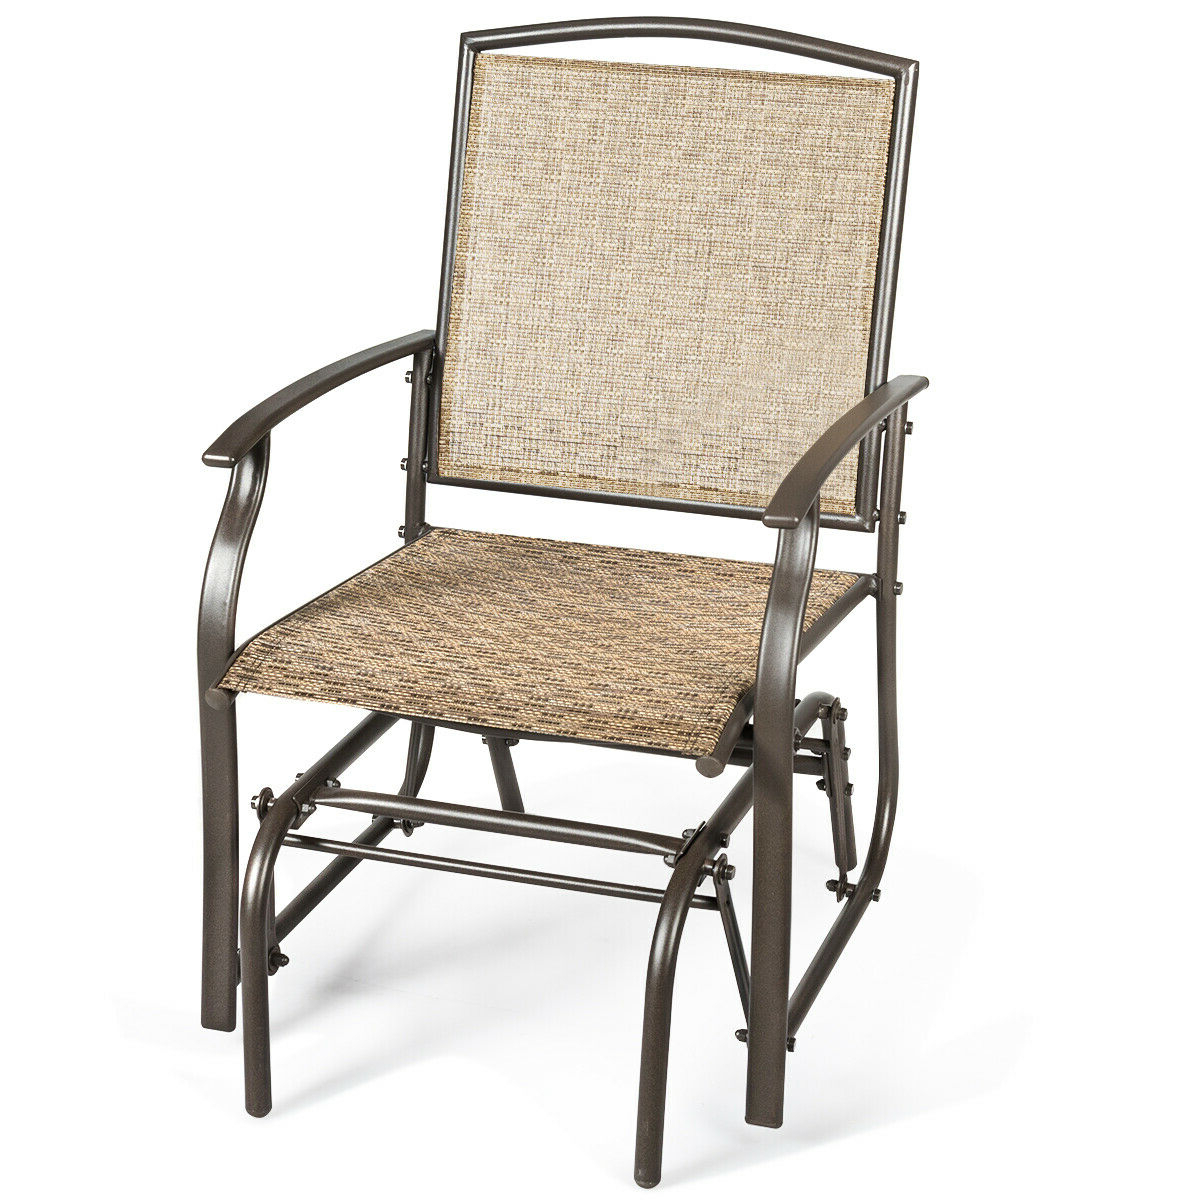 Costway Patio Swing Single Glider Chair Rocking Seating Steel Frame Garden Furni Brown With Regard To Recent Outdoor Swing Glider Chairs With Powder Coated Steel Frame (View 8 of 25)